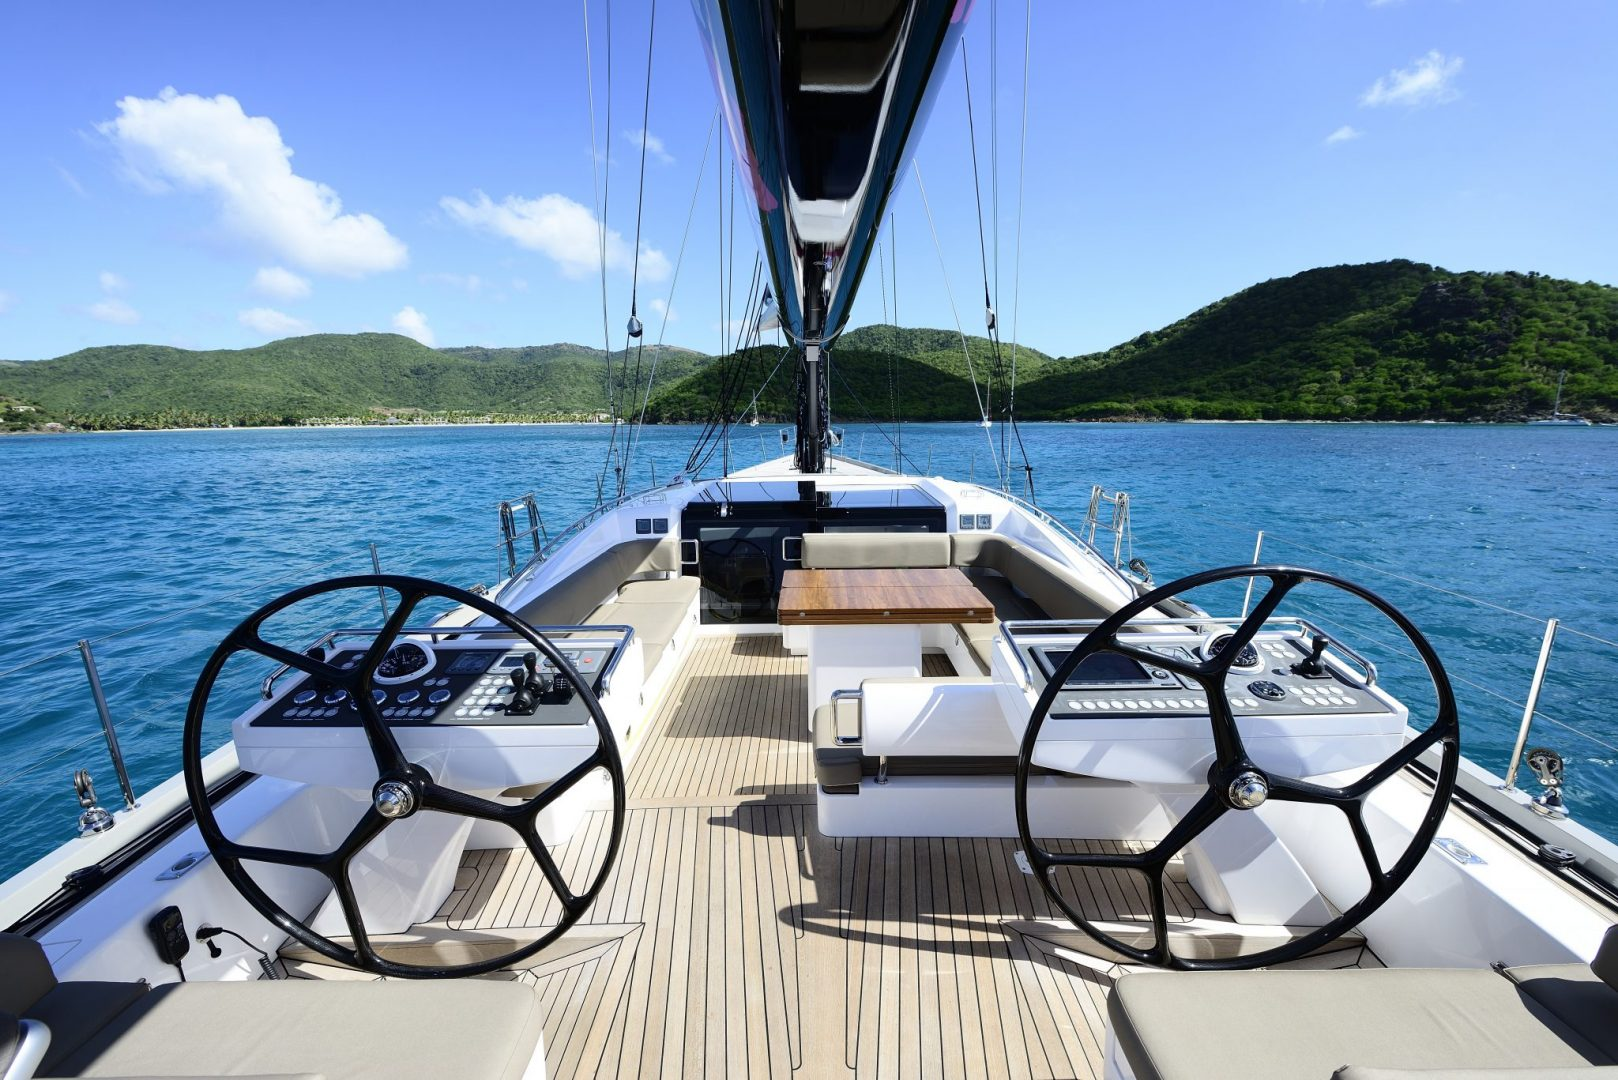 Yacht home page